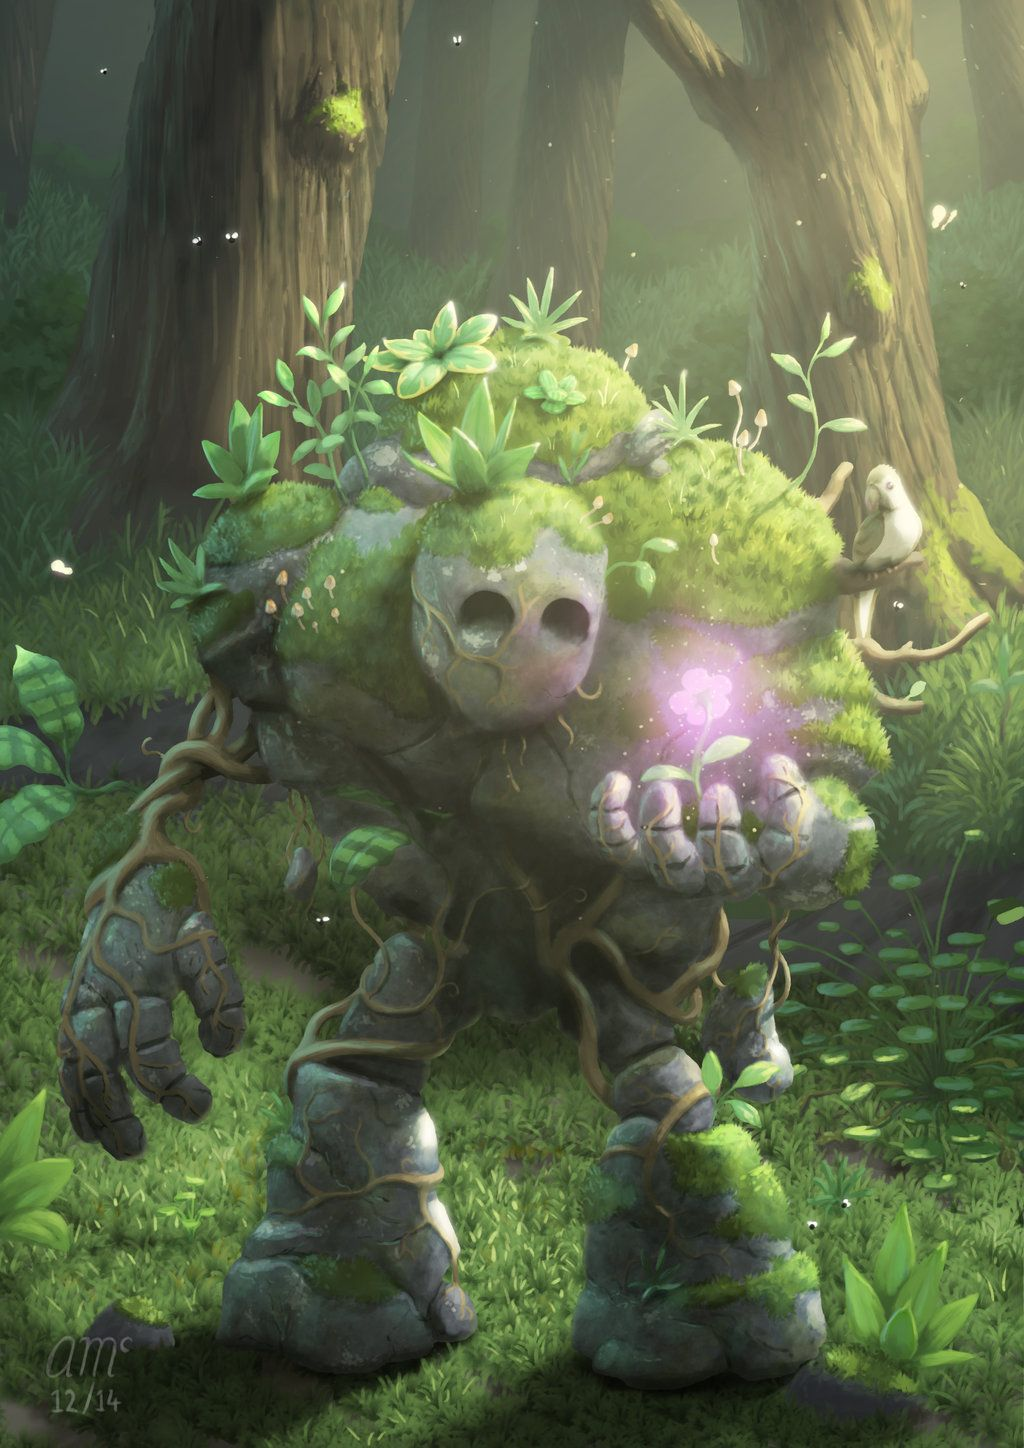 Garden Golem by on